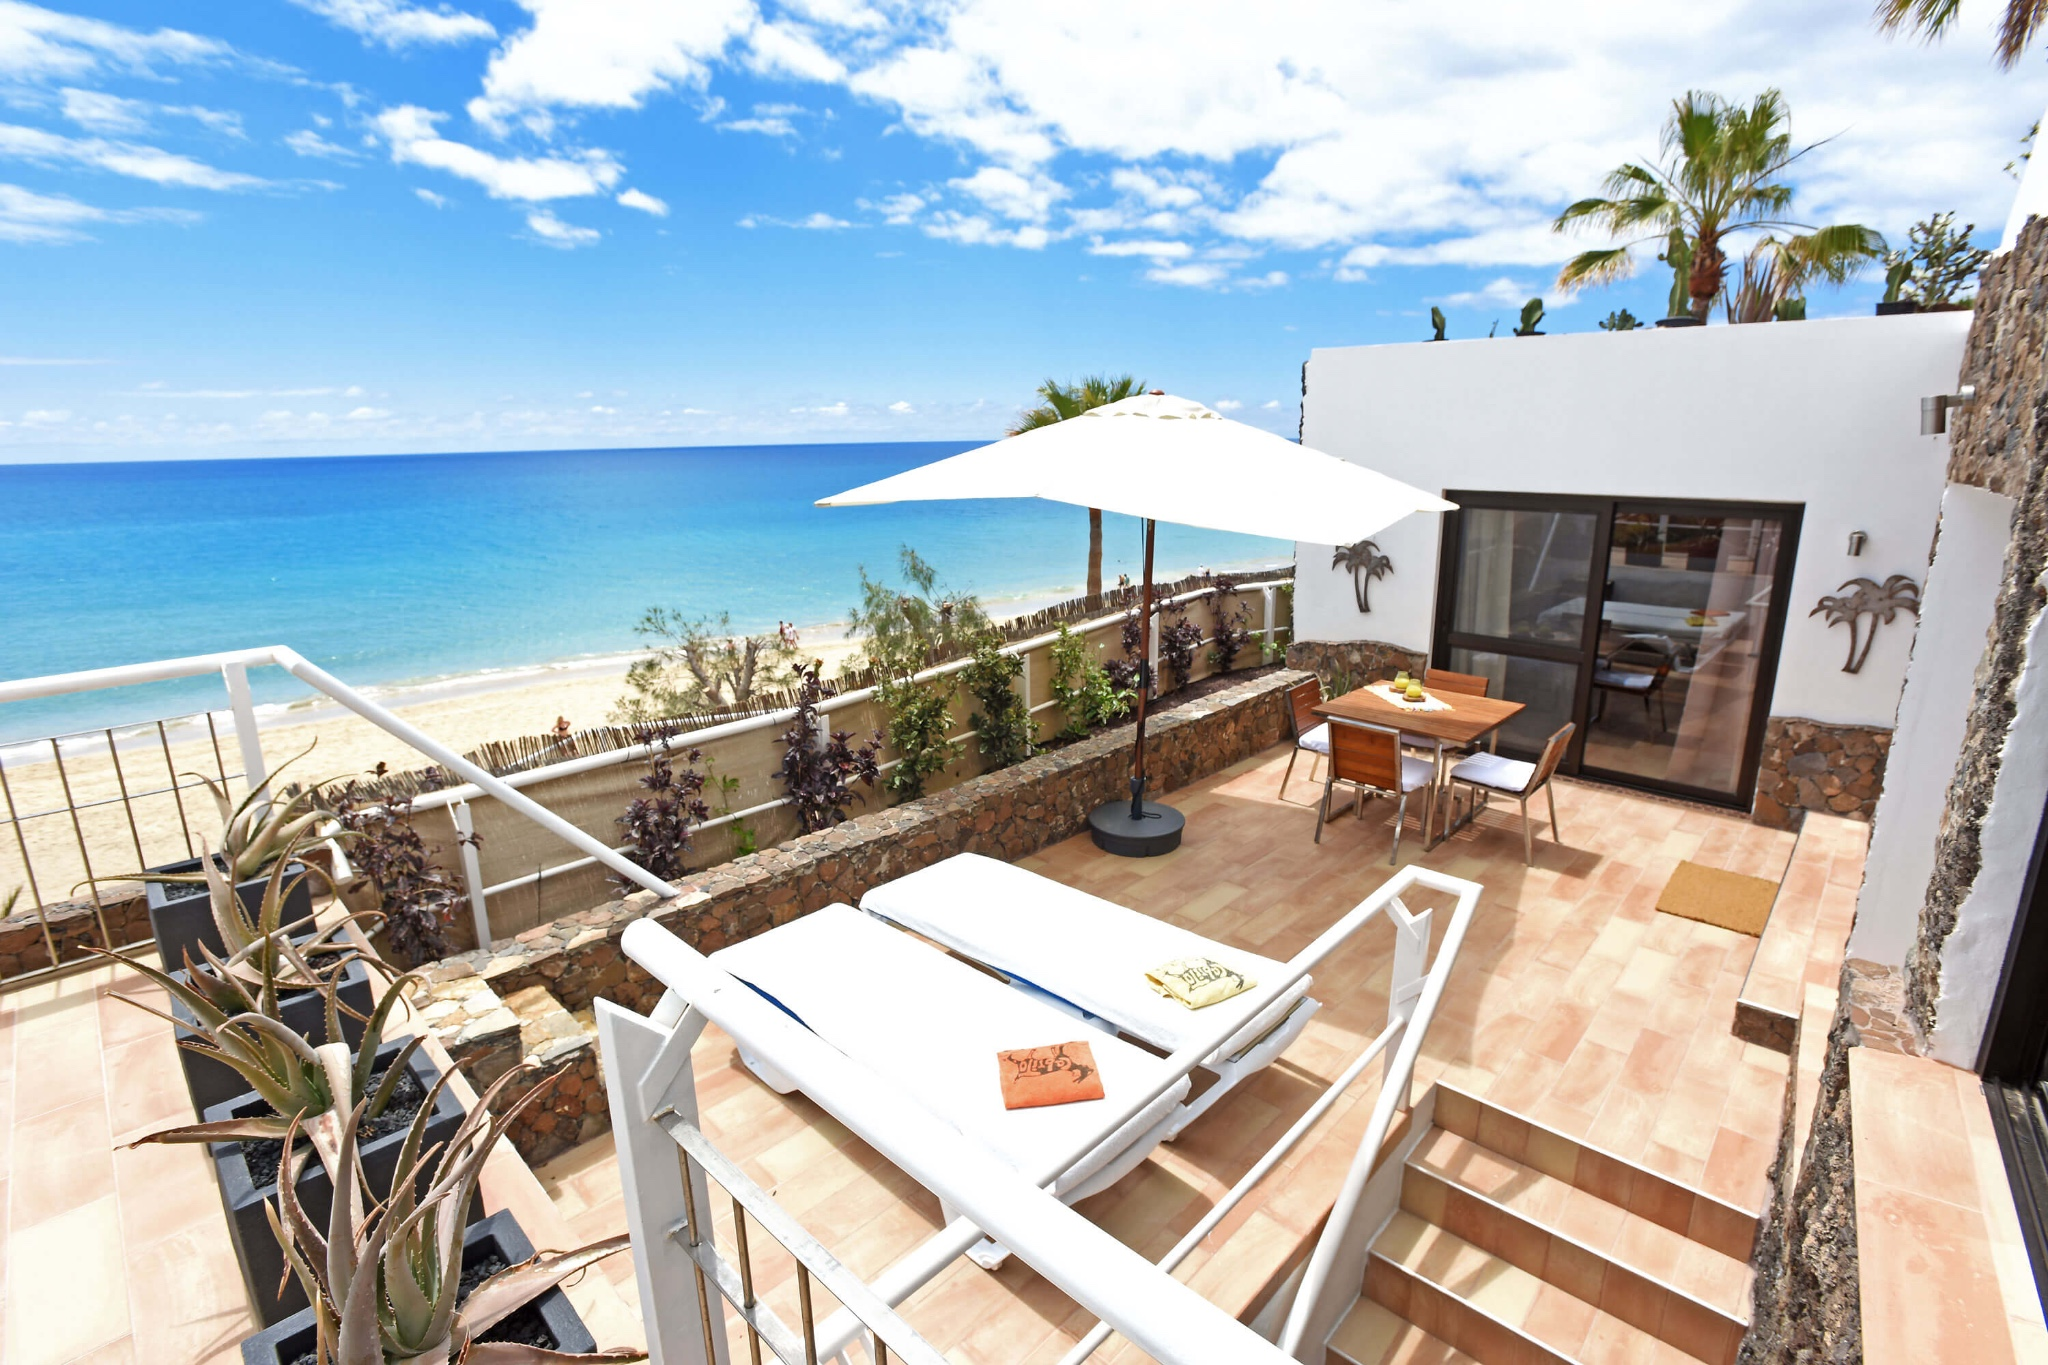 Charming beachfront apartment with direct access to the golden sandy beach of Costa Calma in the south of the island